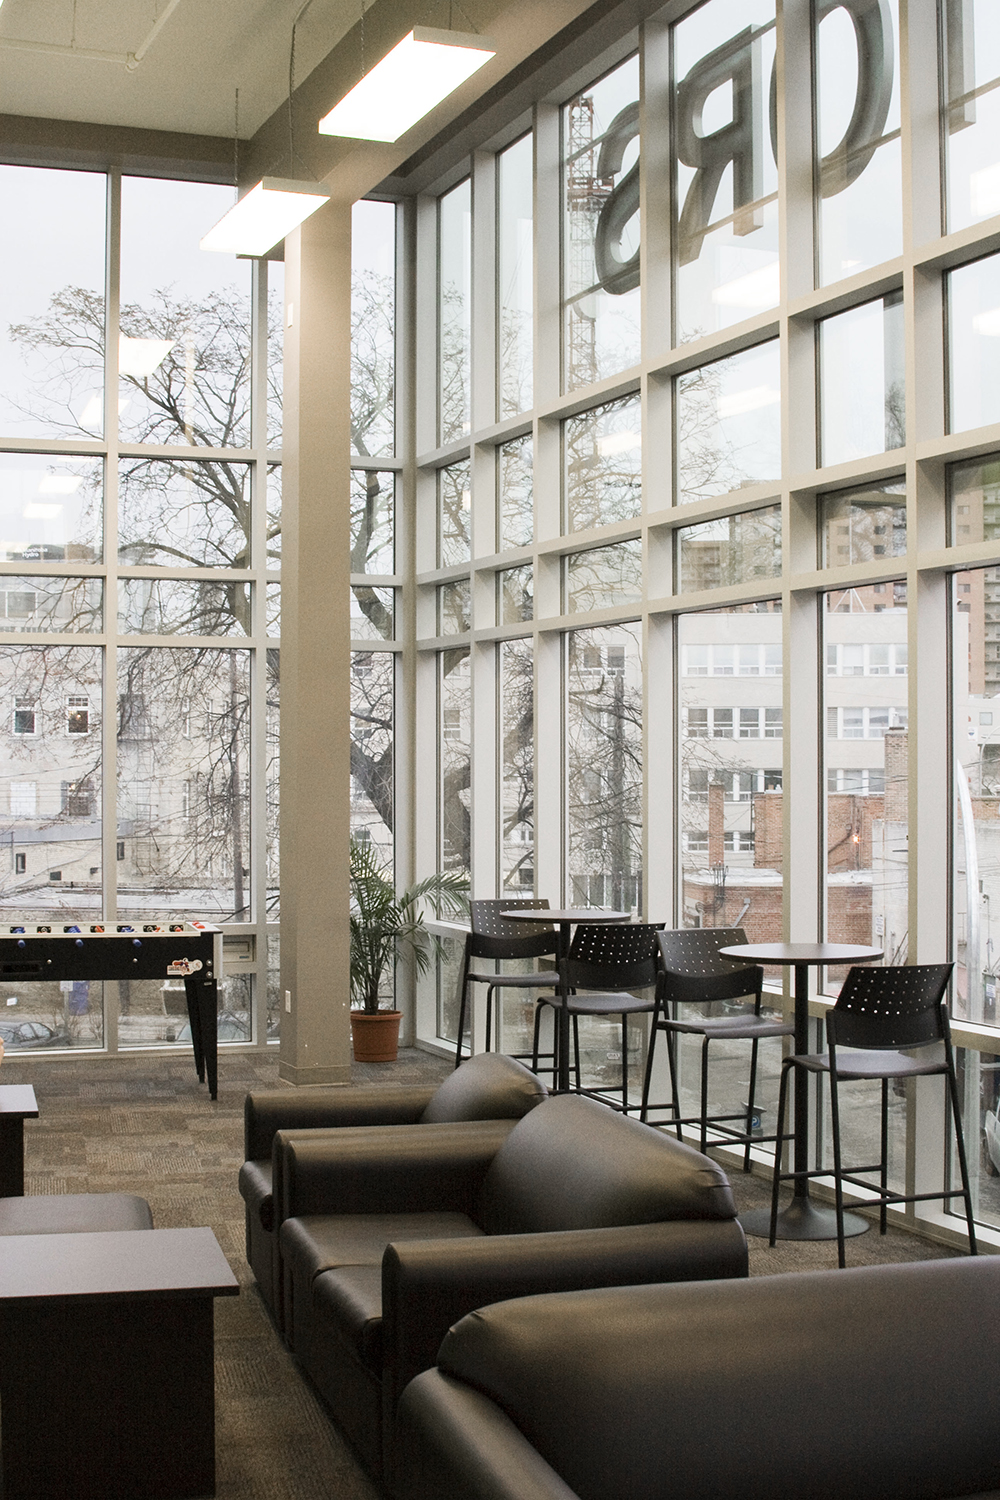 U of W Housing (McFeetor's Hall), interior photo of common area / Photo: Tracy A Wieler